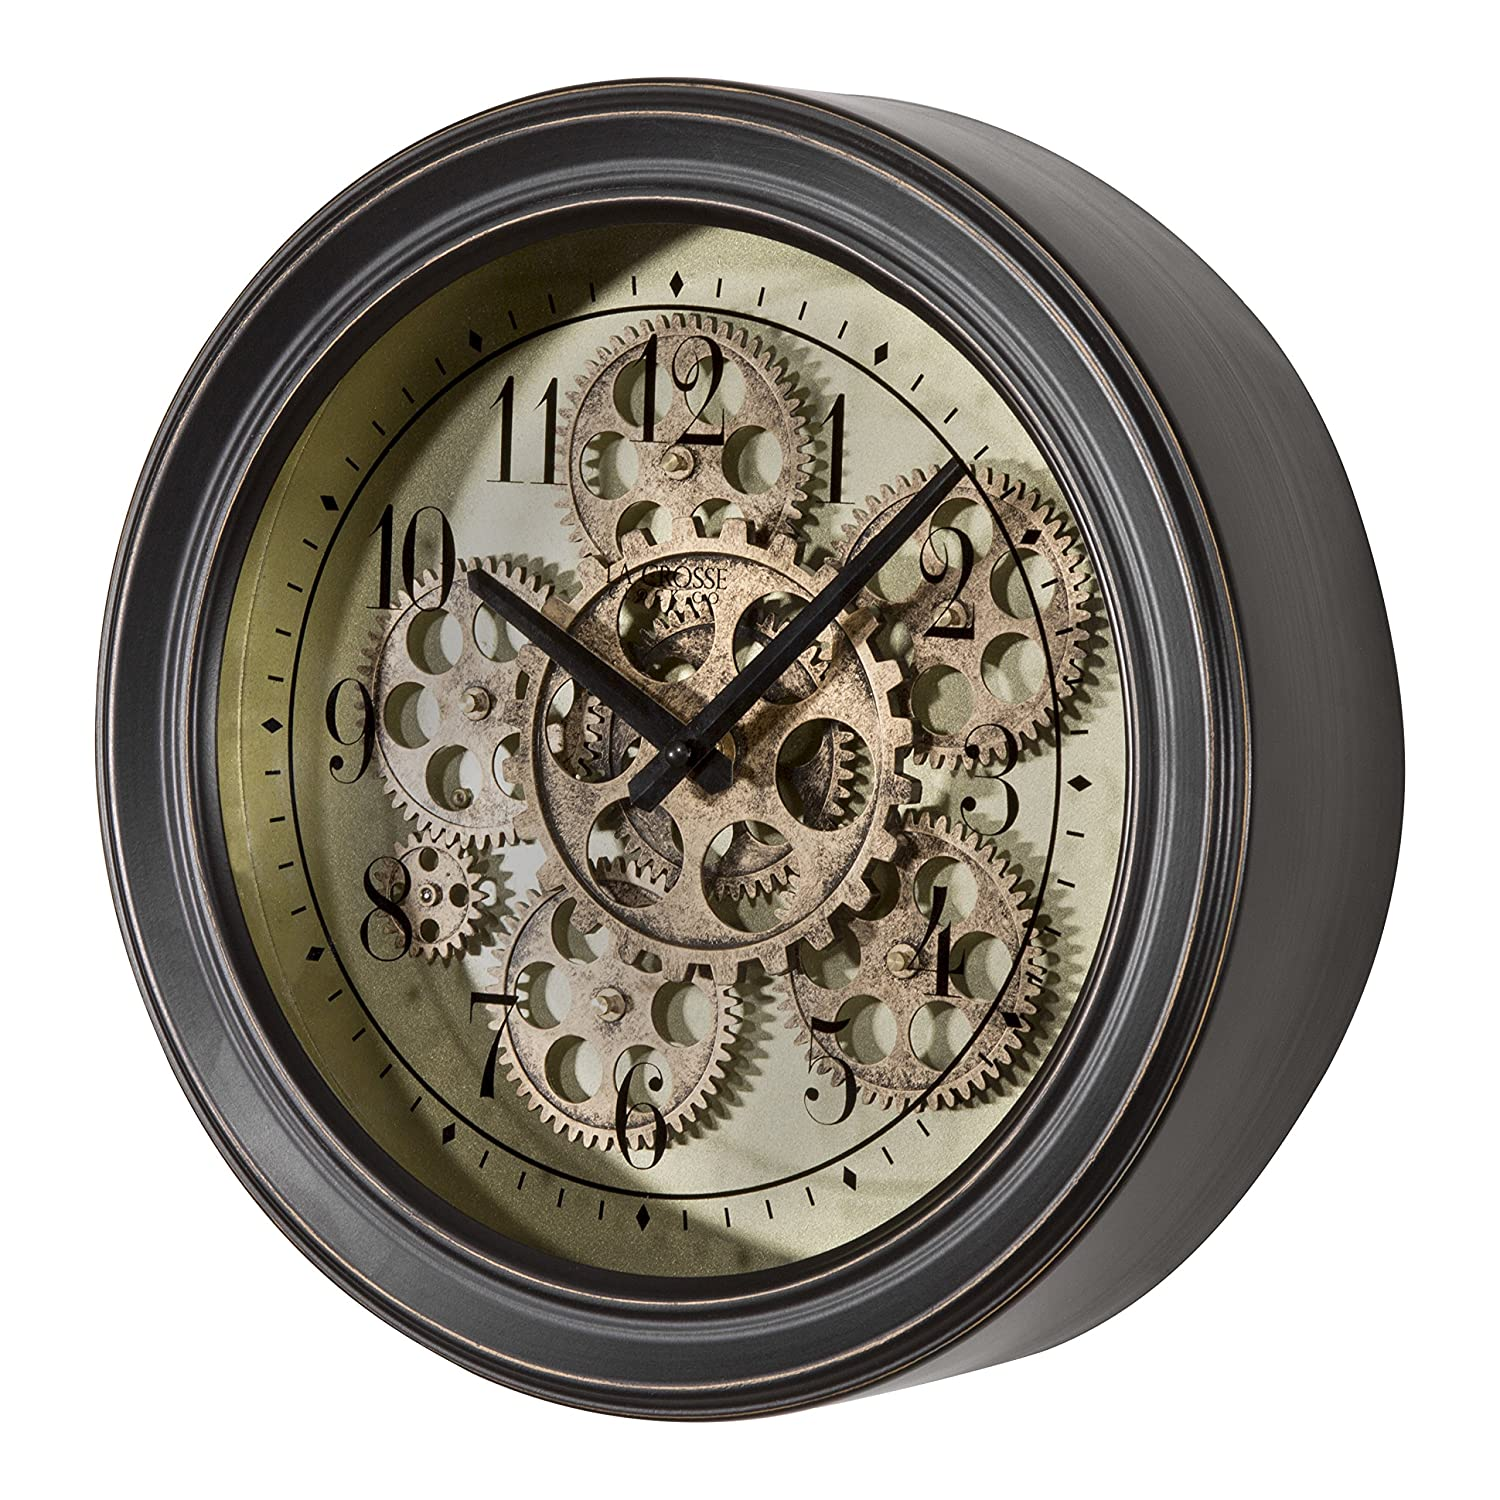 Amazon.com: Lacrosse BBB85289 13 in. Metal Clock with Working Gears ...